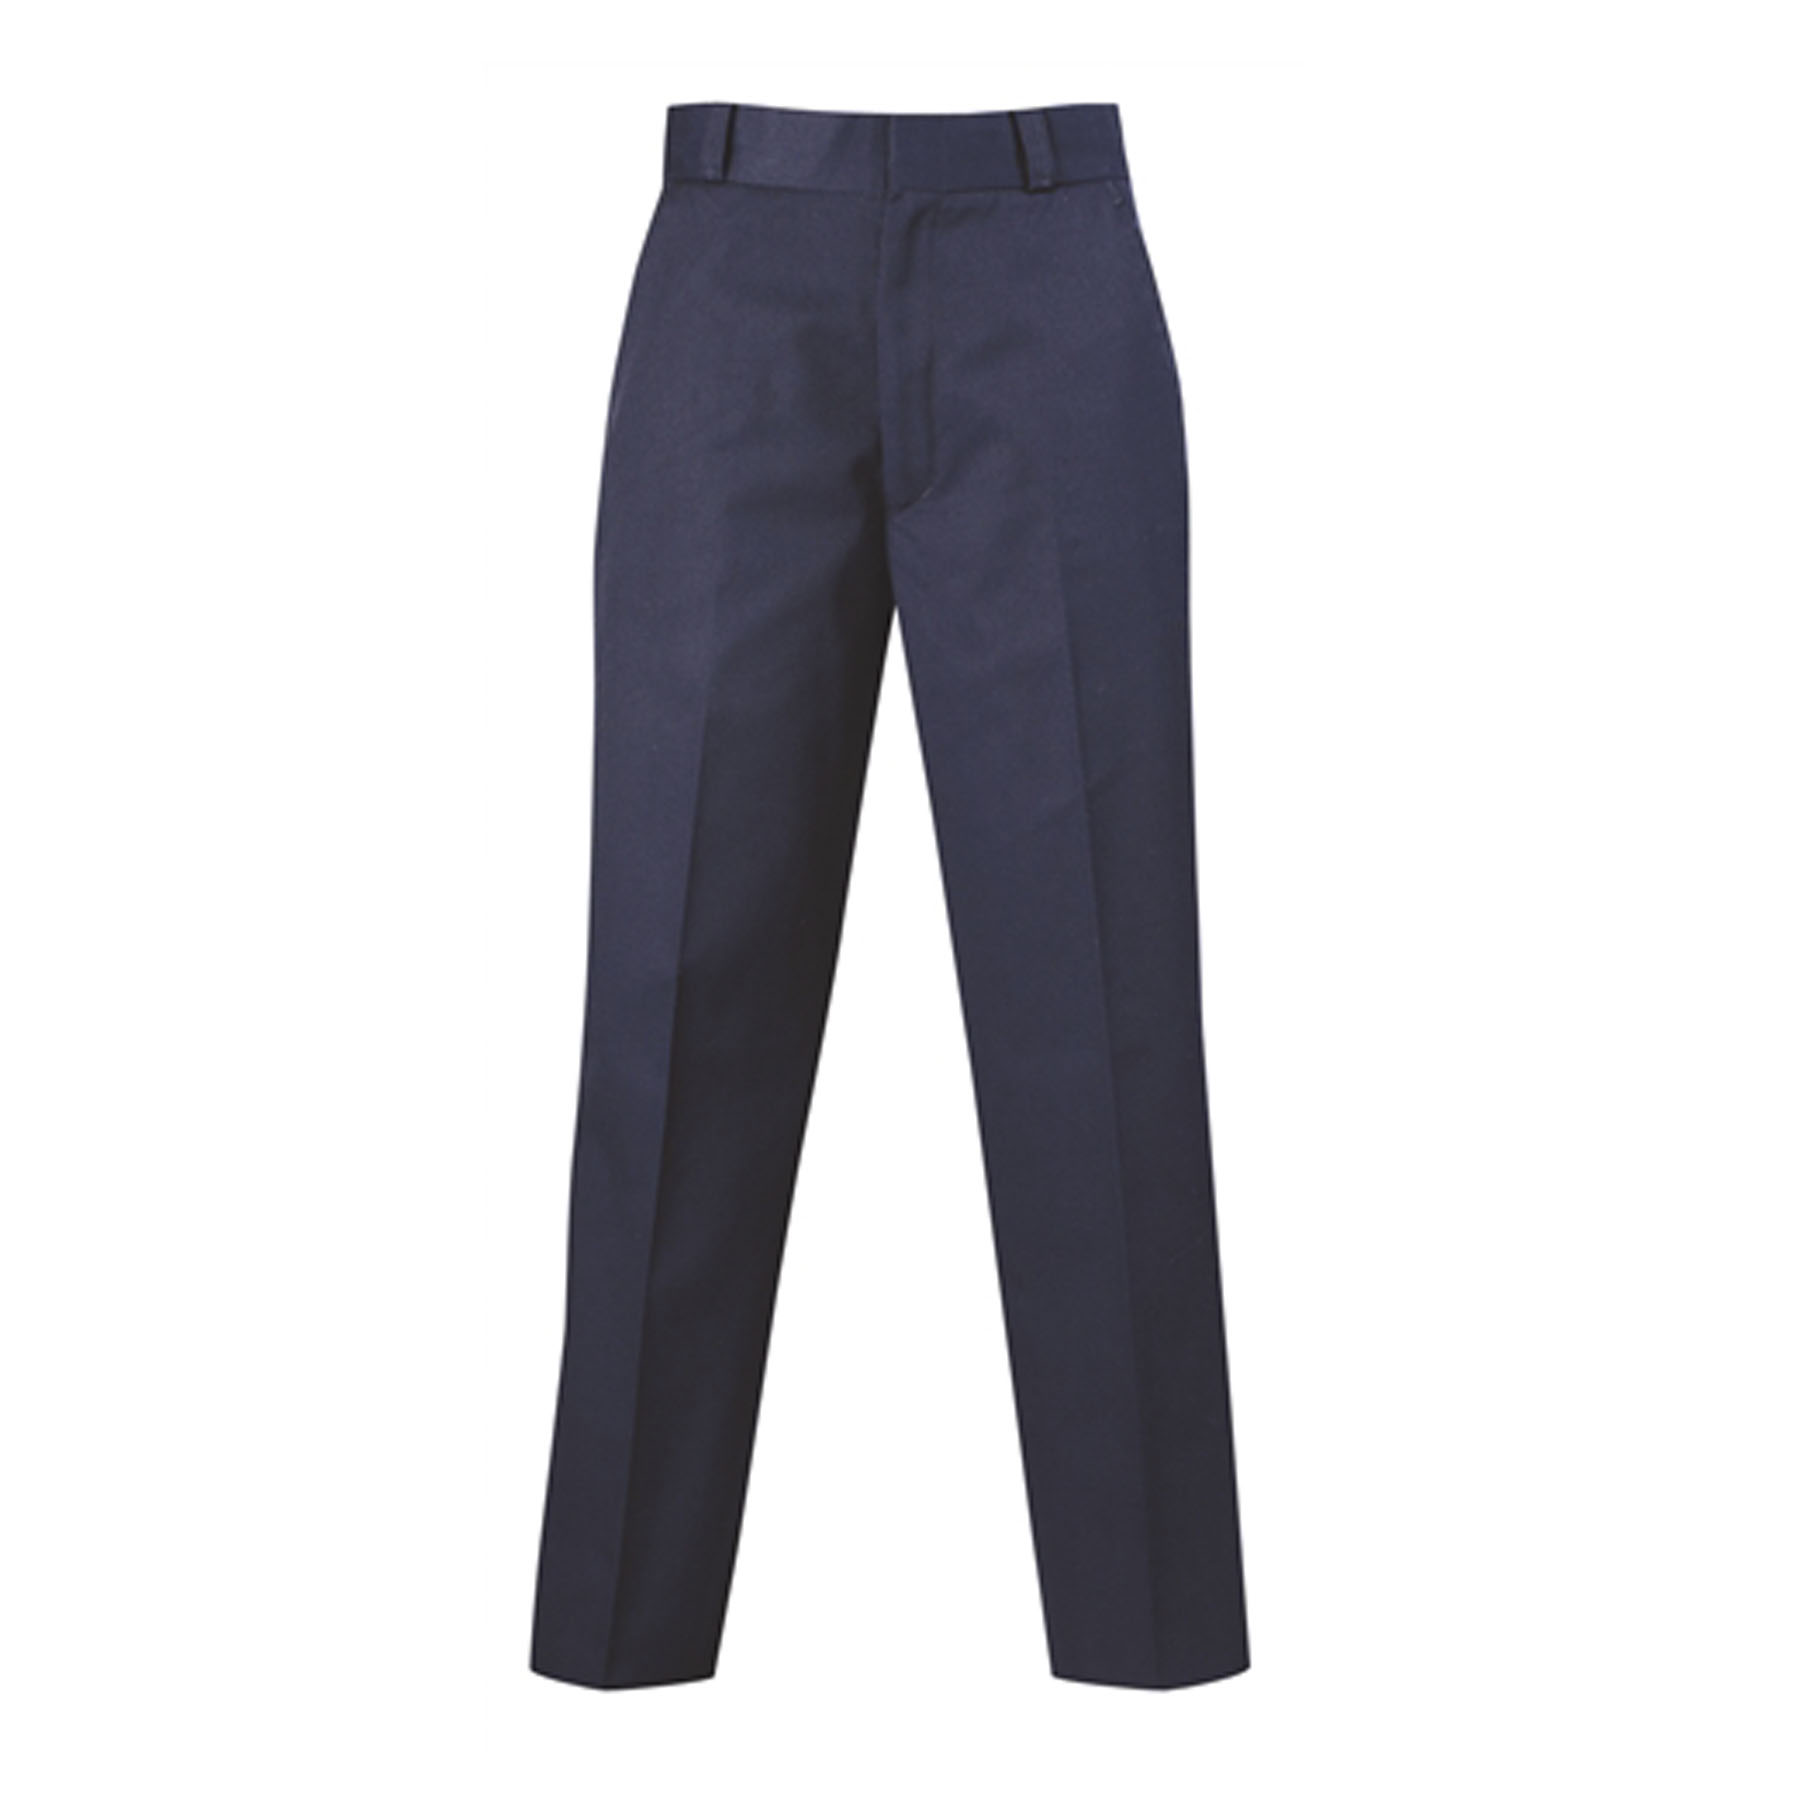 Lion Heavy Weight Uniform Trousers in Nomex IIIA